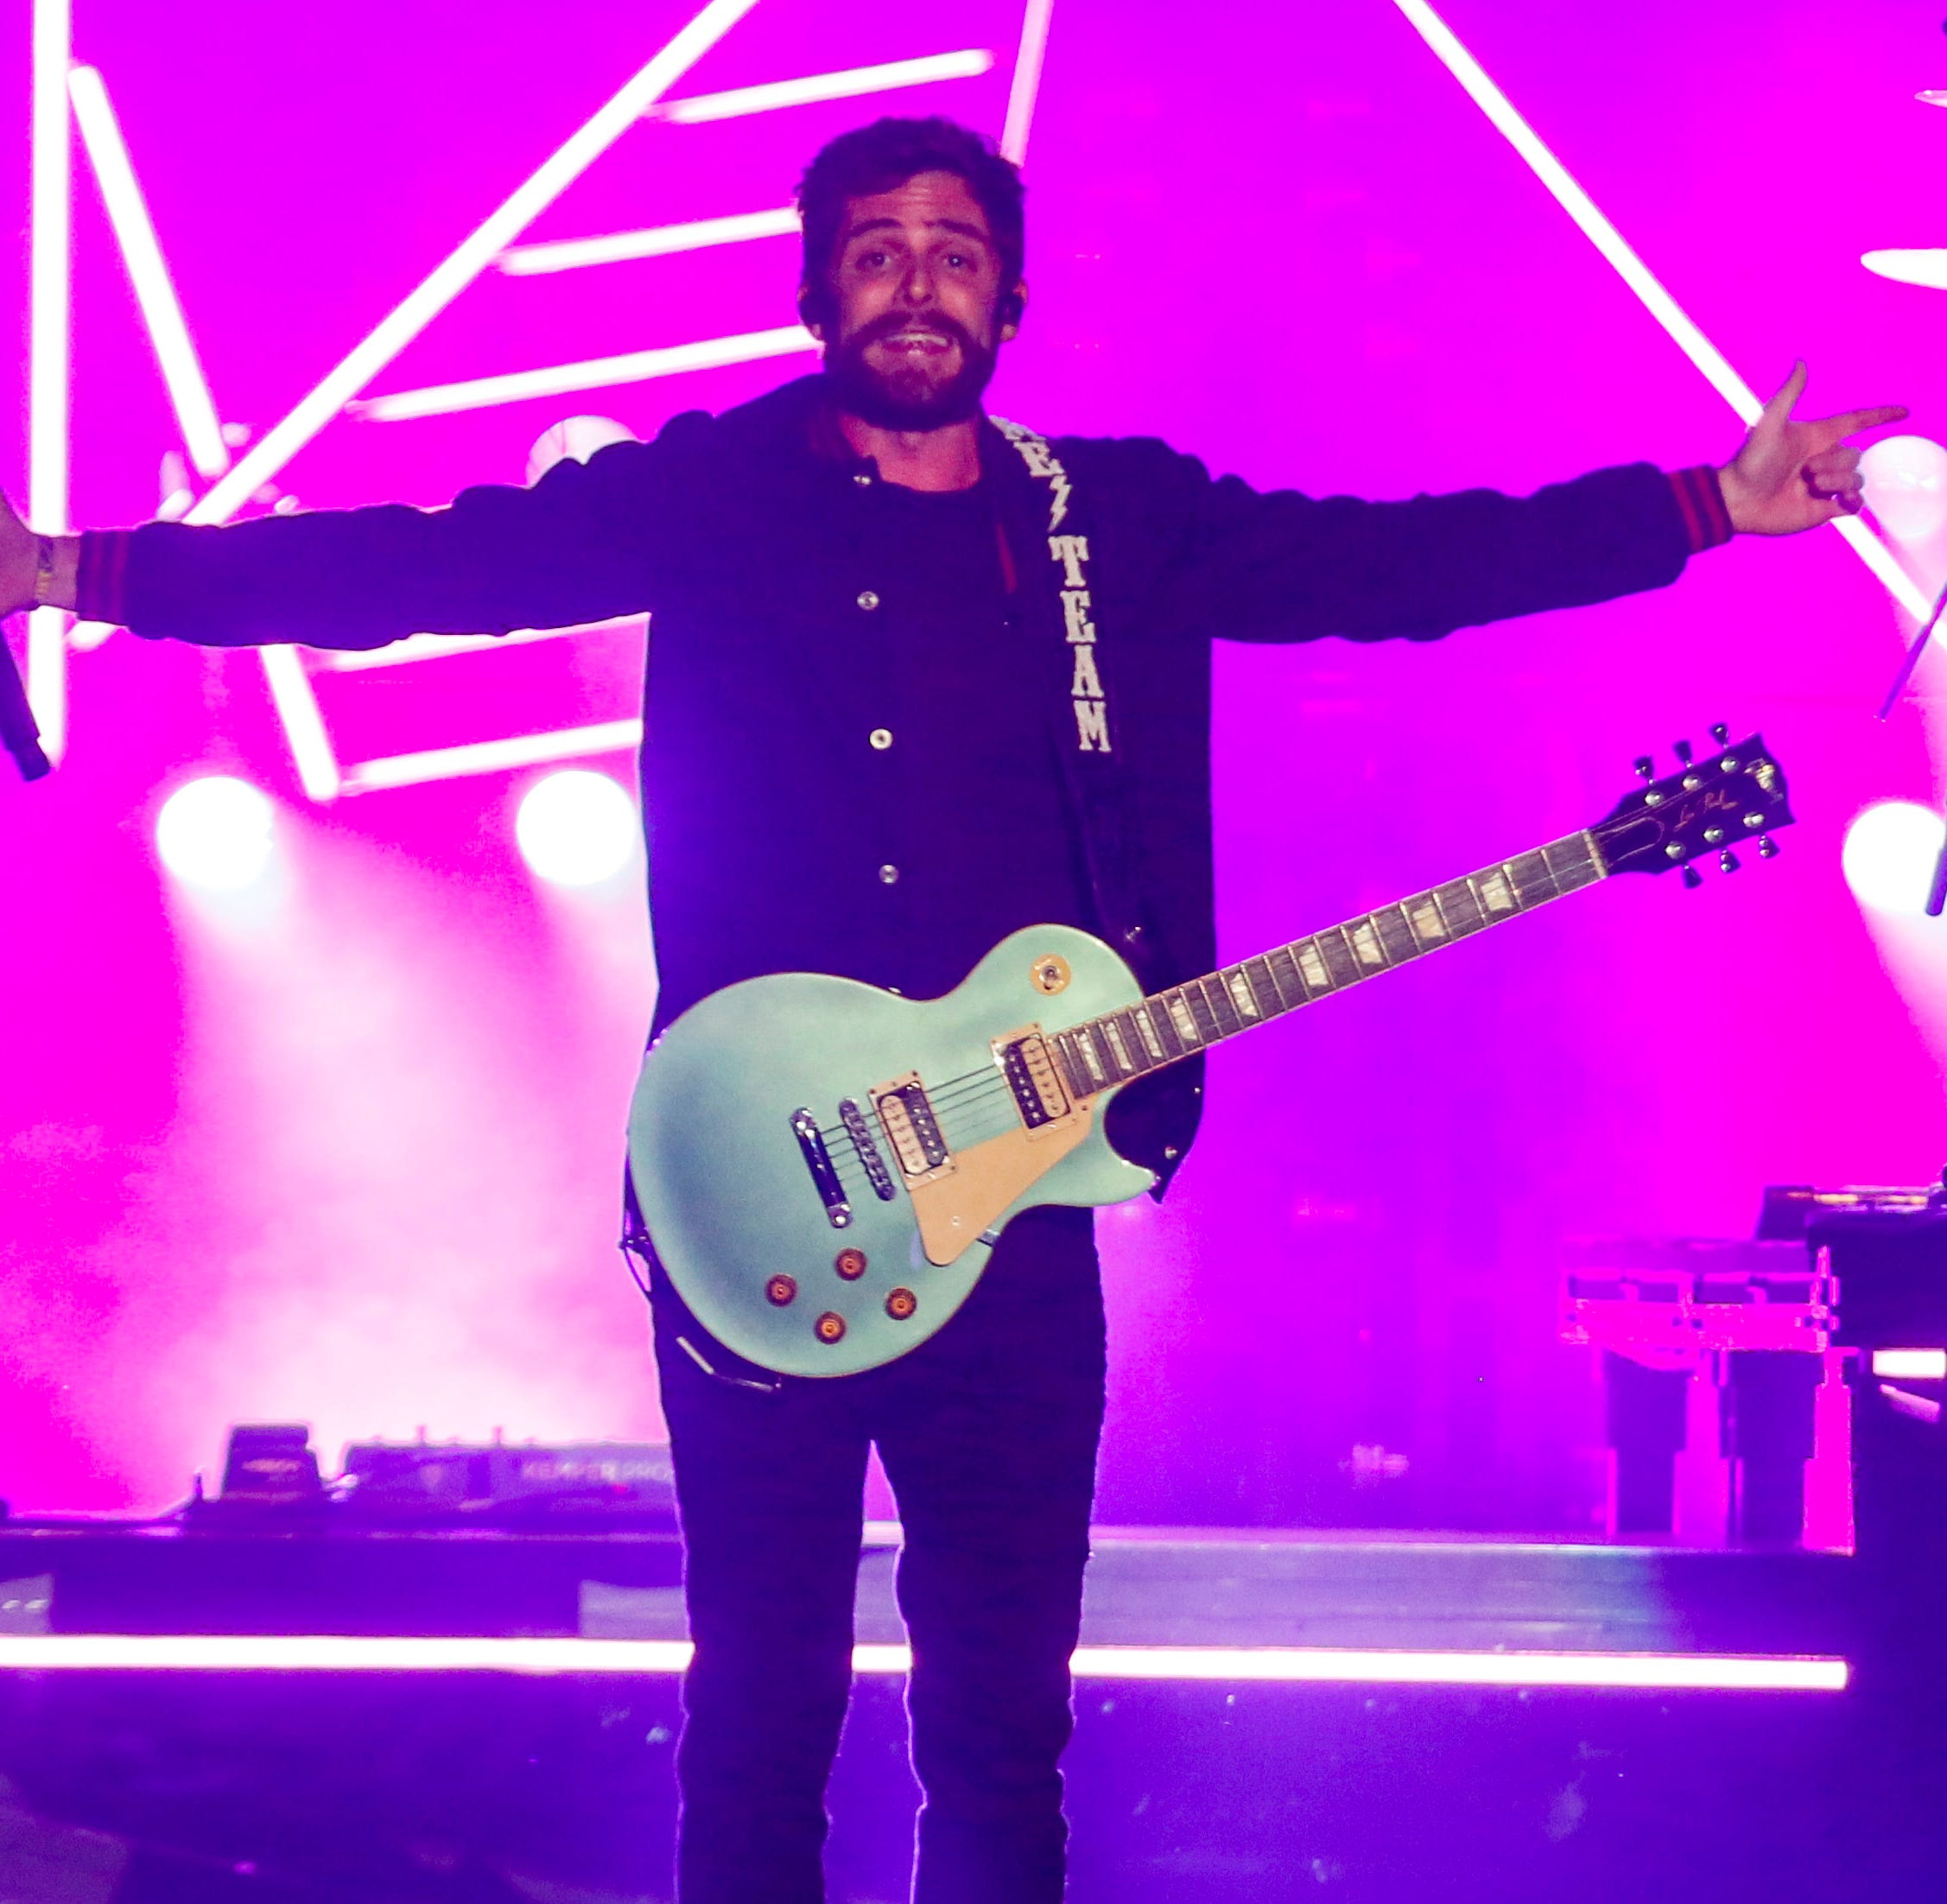 Thomas Rhett brings his country pop charm to a sold-out Iowa State Fair crowd